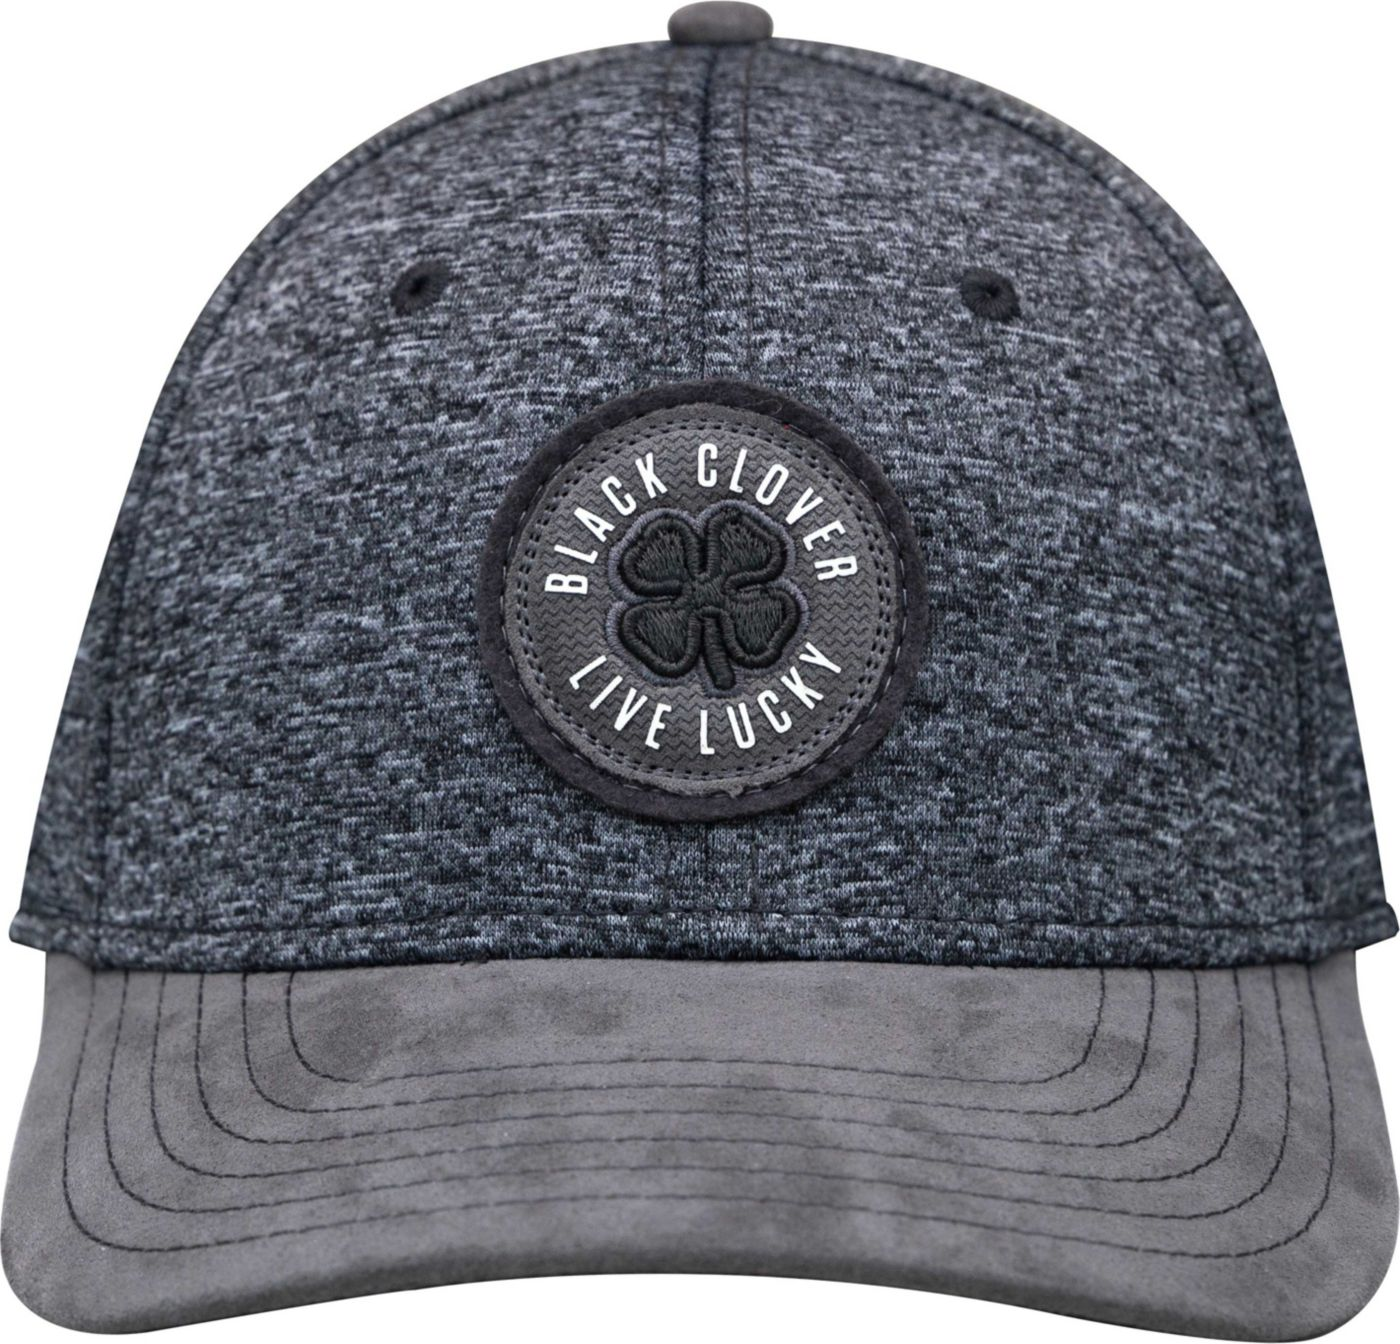 Black Clover Men's Dexter Golf Hat